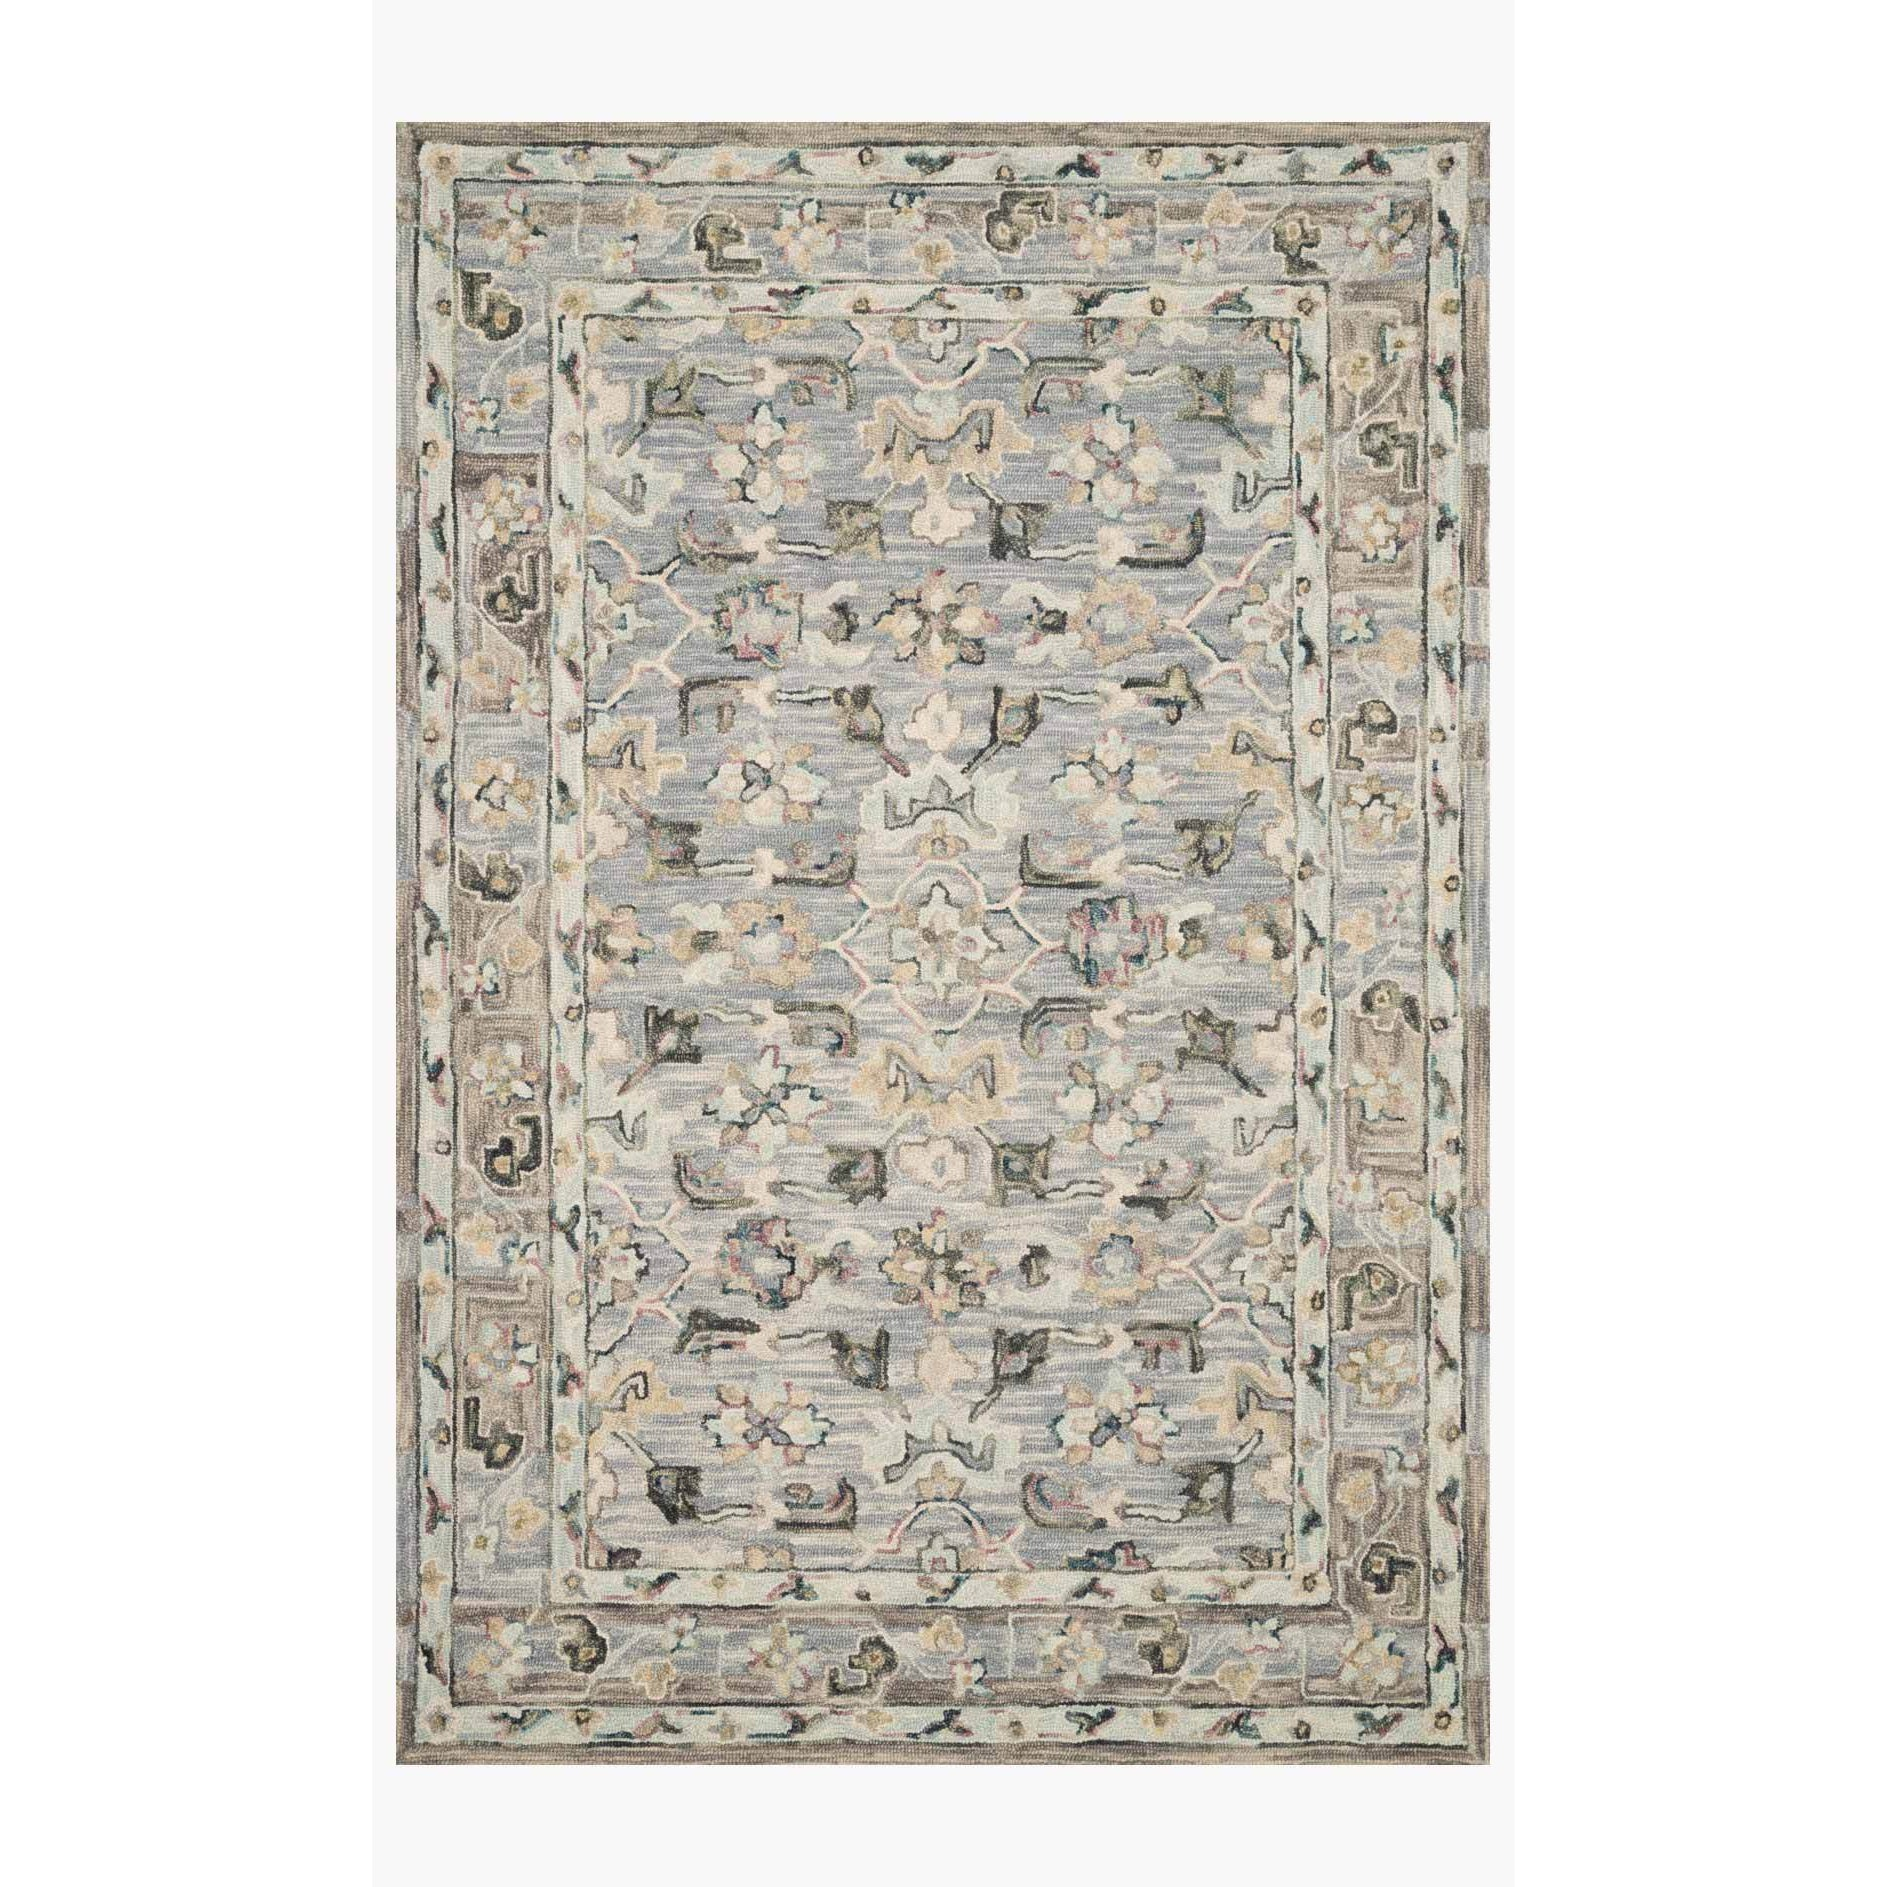 Beatty Rugs by Loloi - BEA-04 - Light Blue / Multi-Loloi Rugs-Blue Hand Home